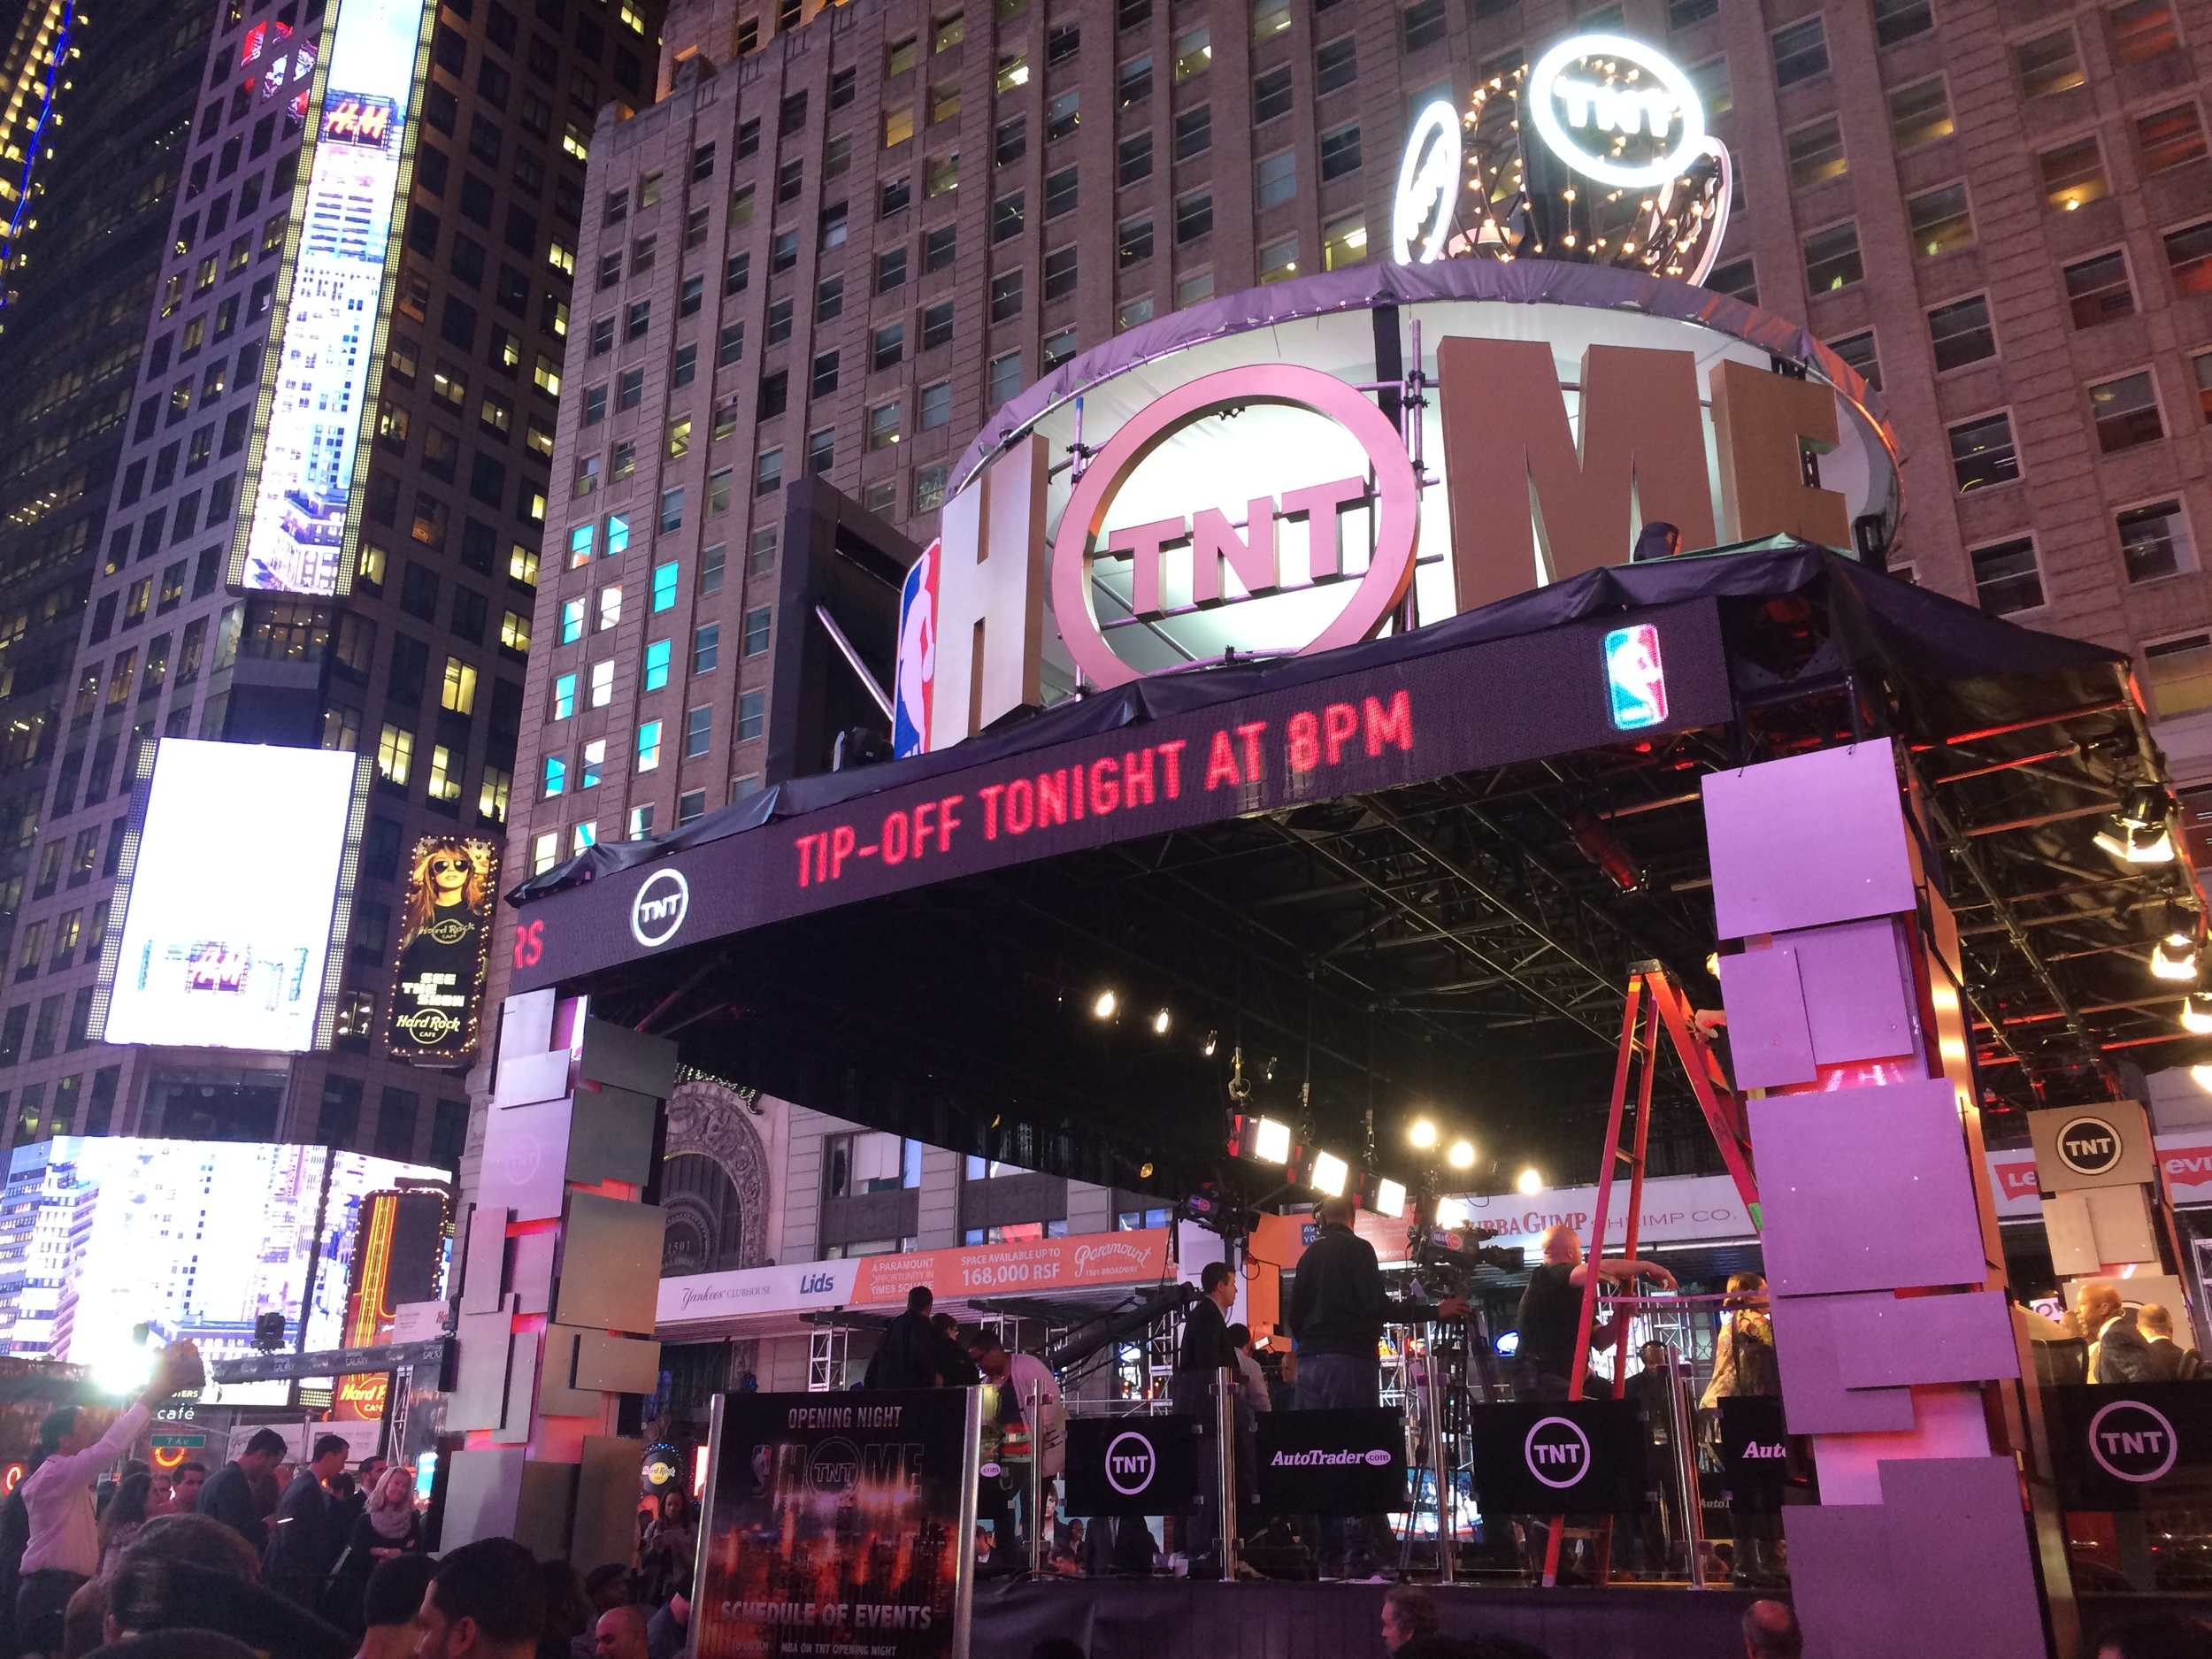 NBA Opening Night on TNT broadcast live from Time Square in New York.